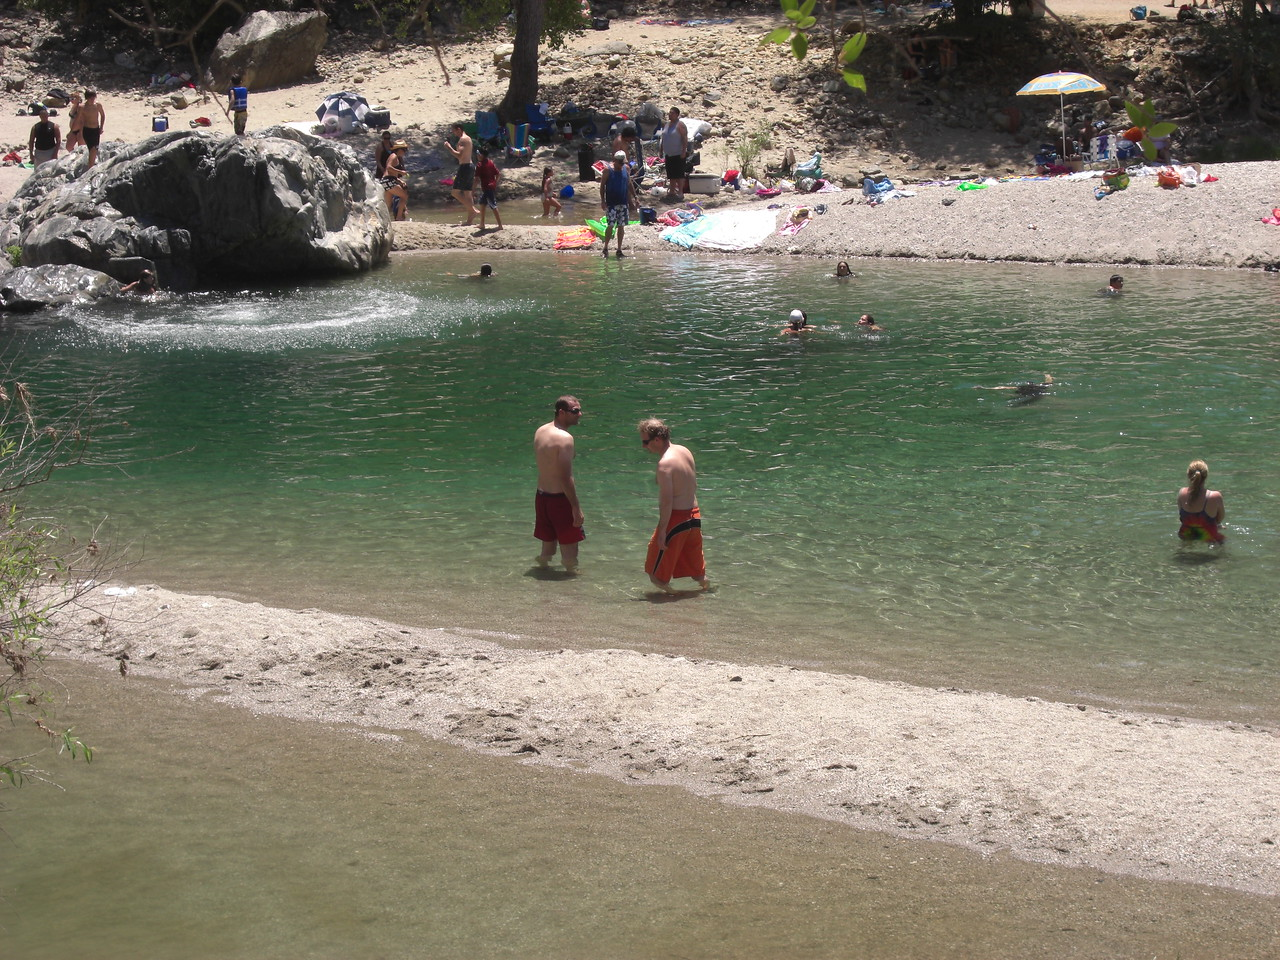 First time to the South Yuba River